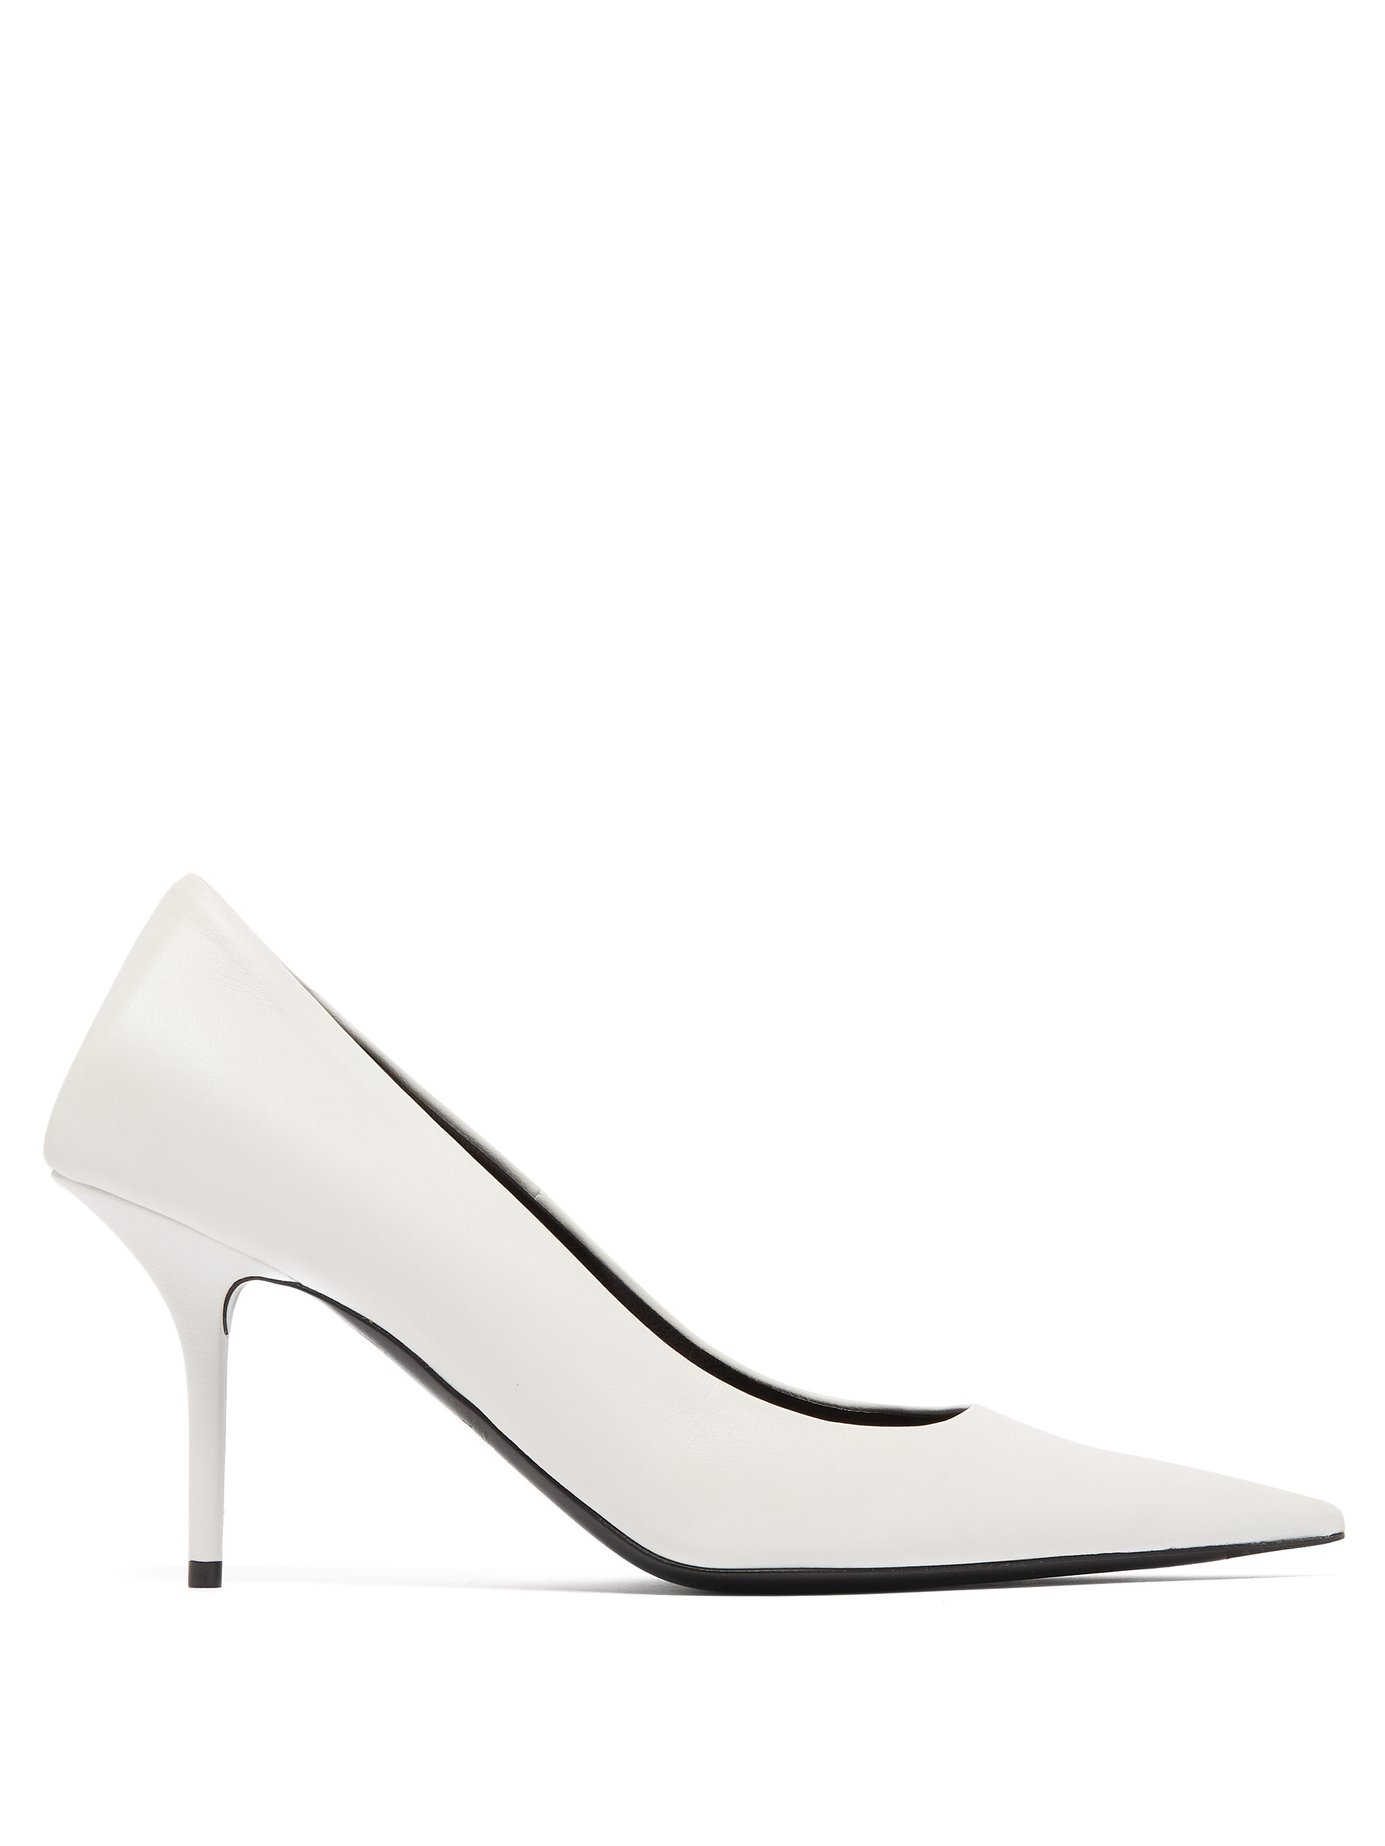 Square Knife leather pumps by Balenciaga, available on matchesfashion.com for £541 Kendall Jenner Shoes Exact Product